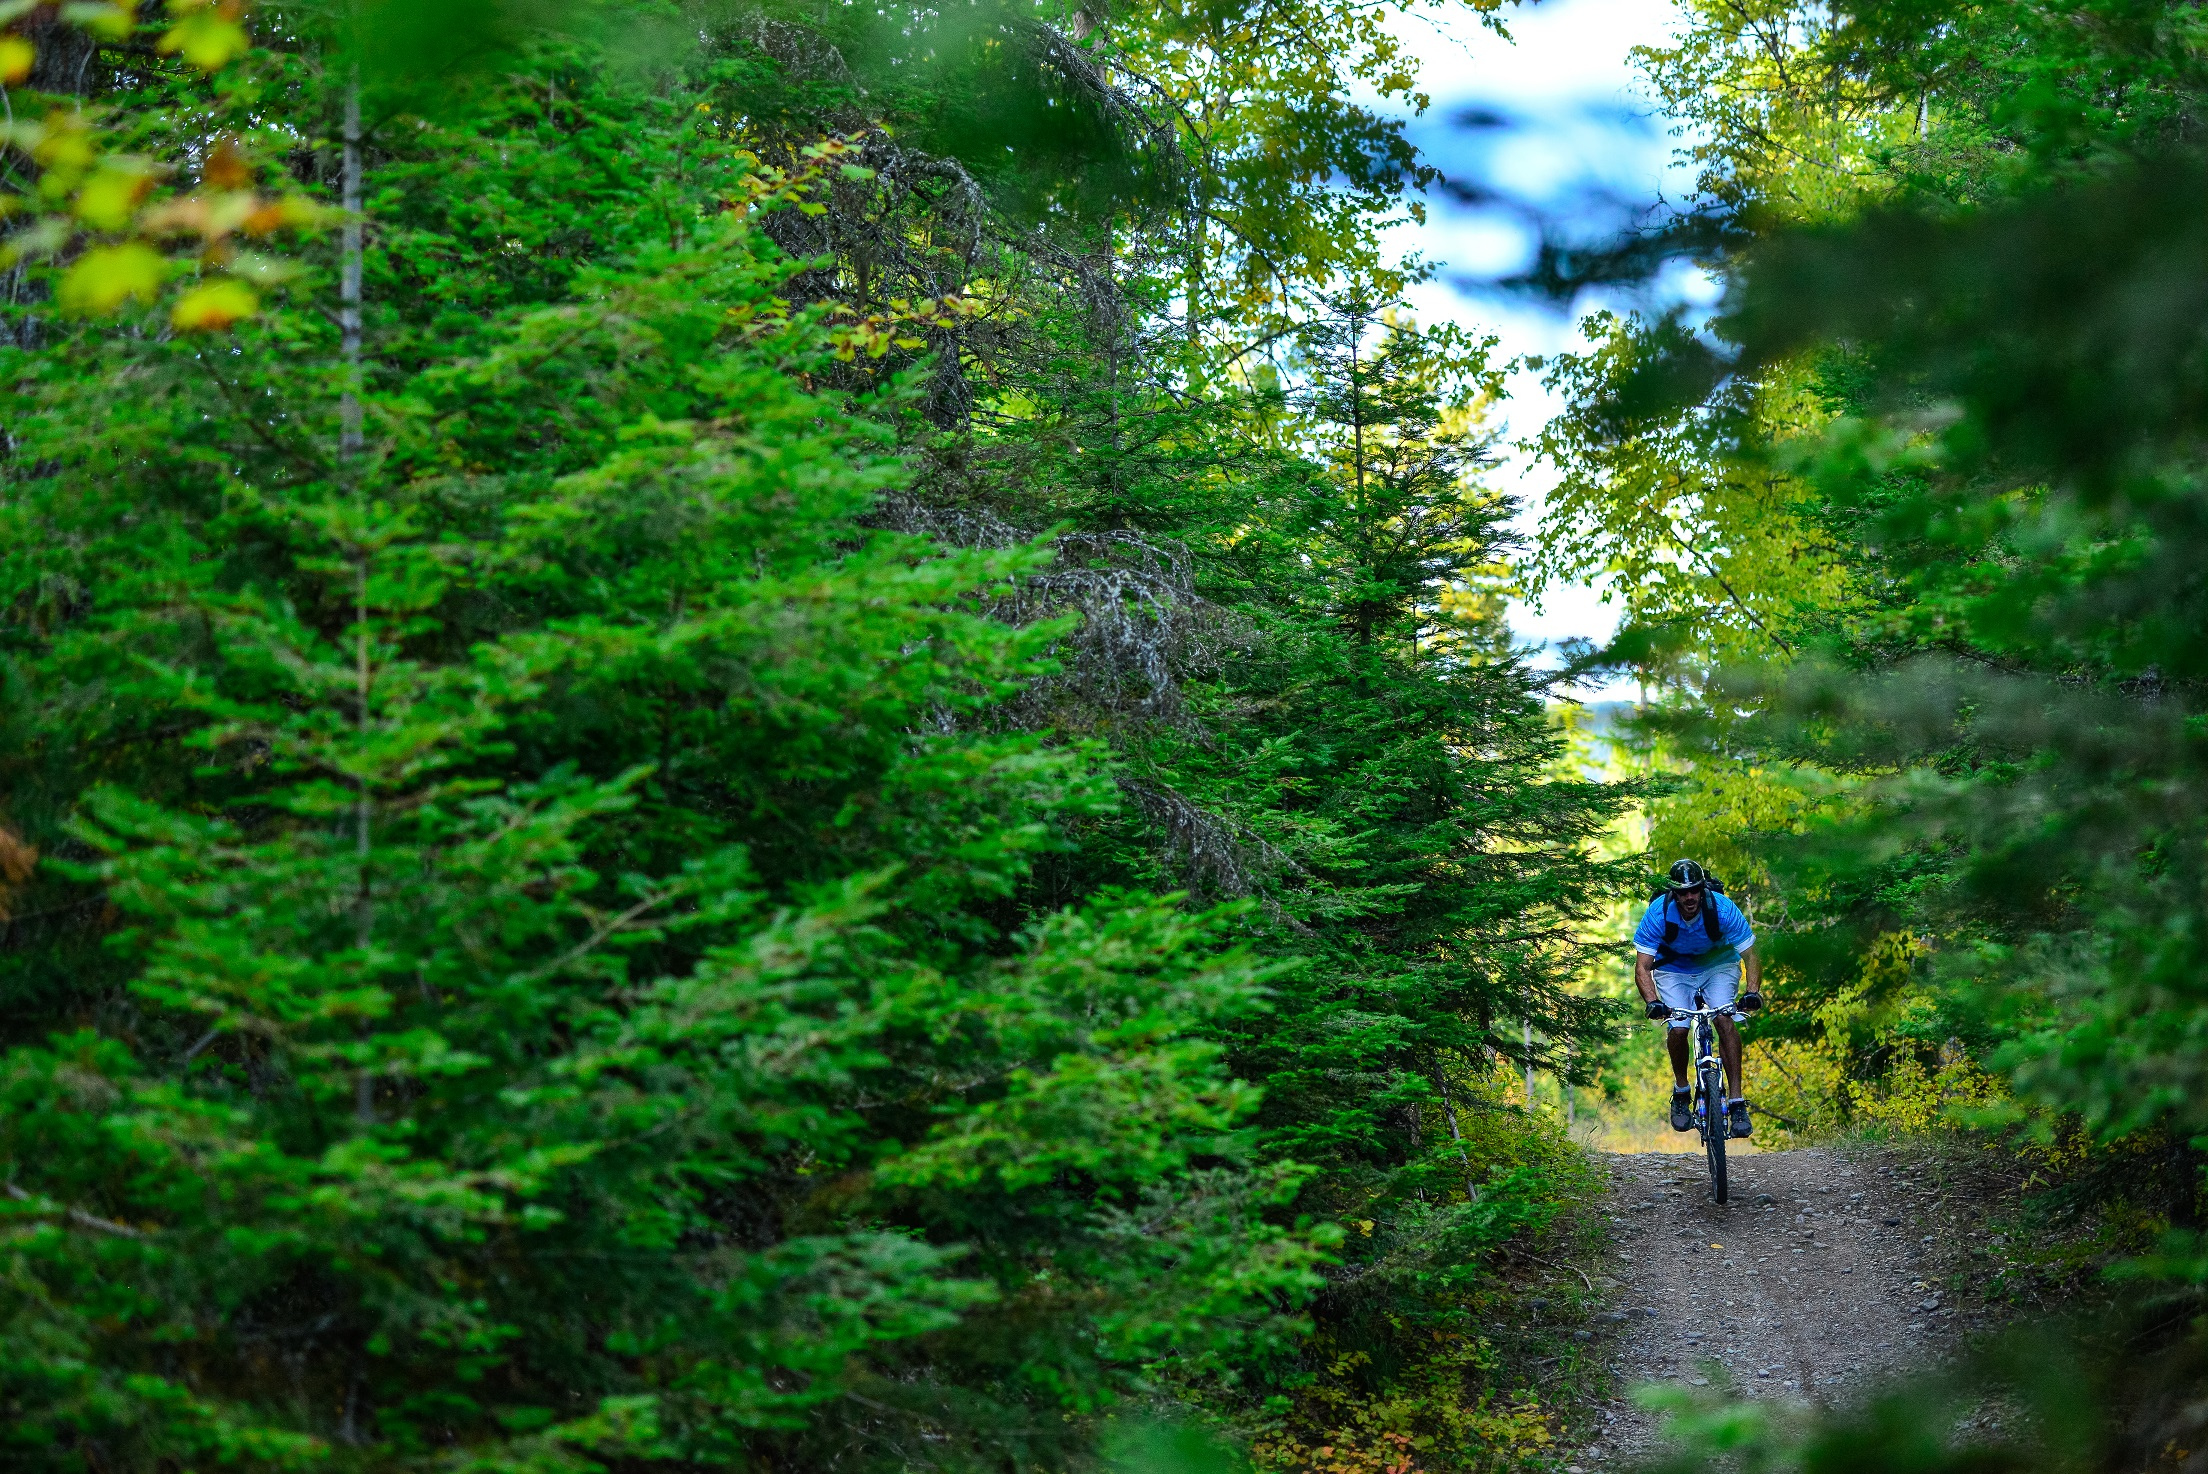 A picture of a mountain biker traveling down a forested trail, with lush green trees on either side.